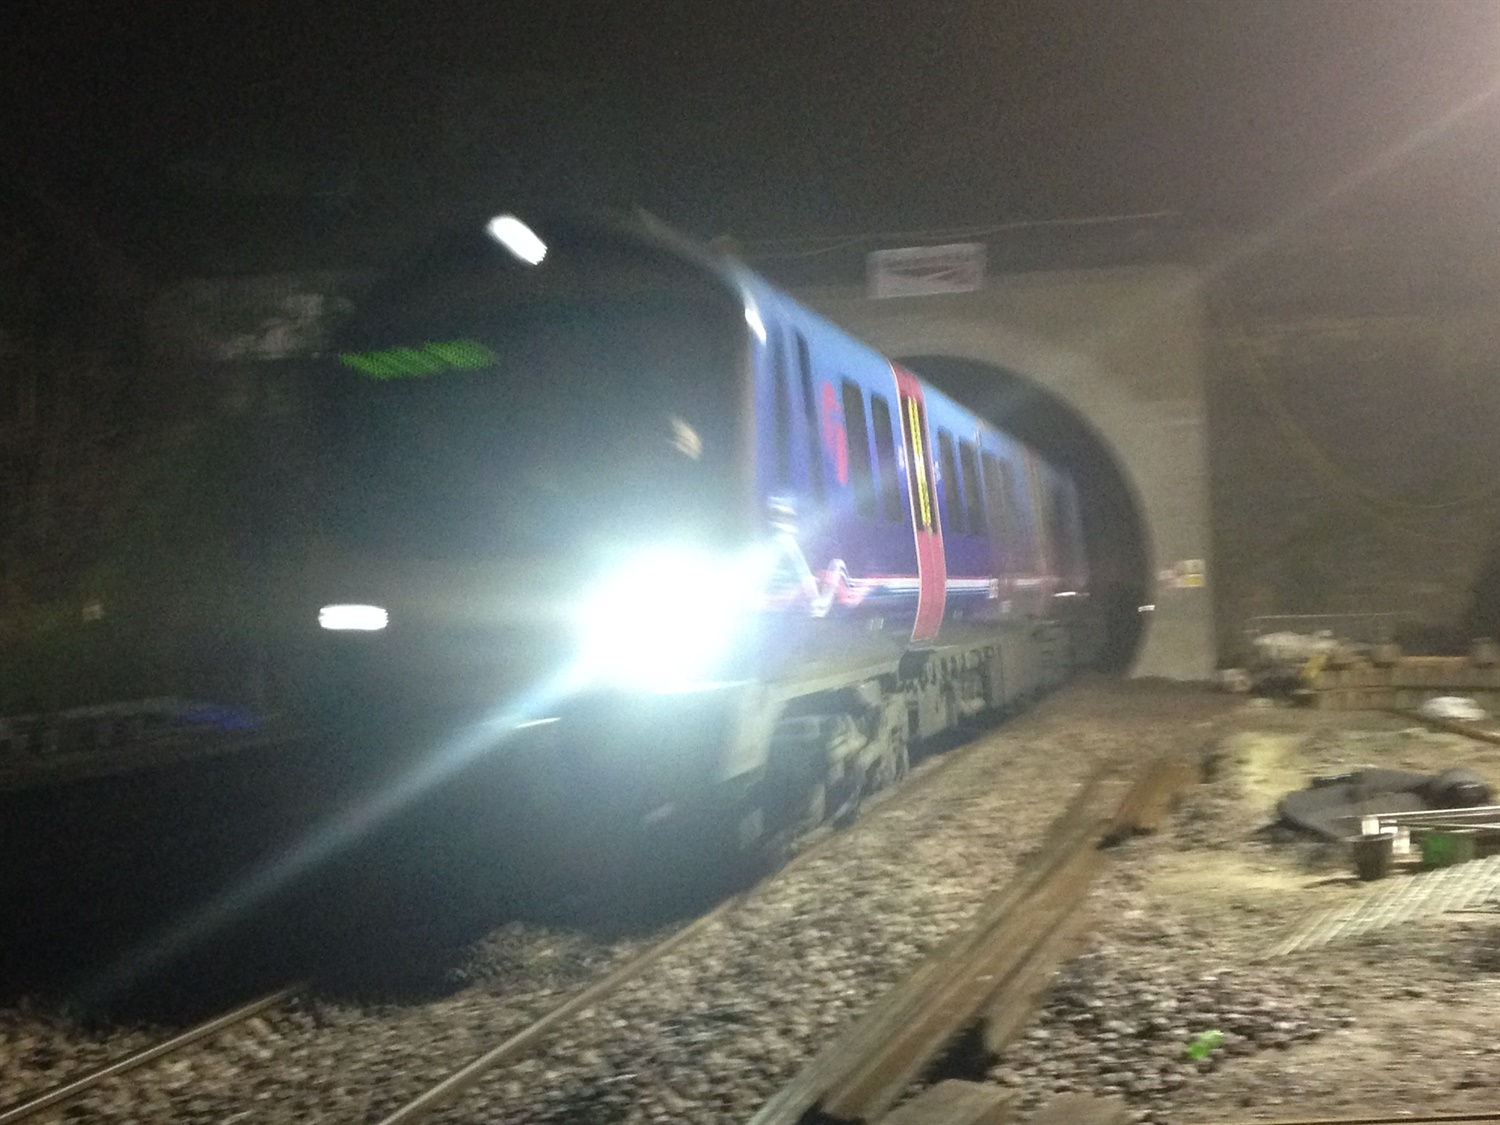 Rail services resume through Farnworth Tunnel